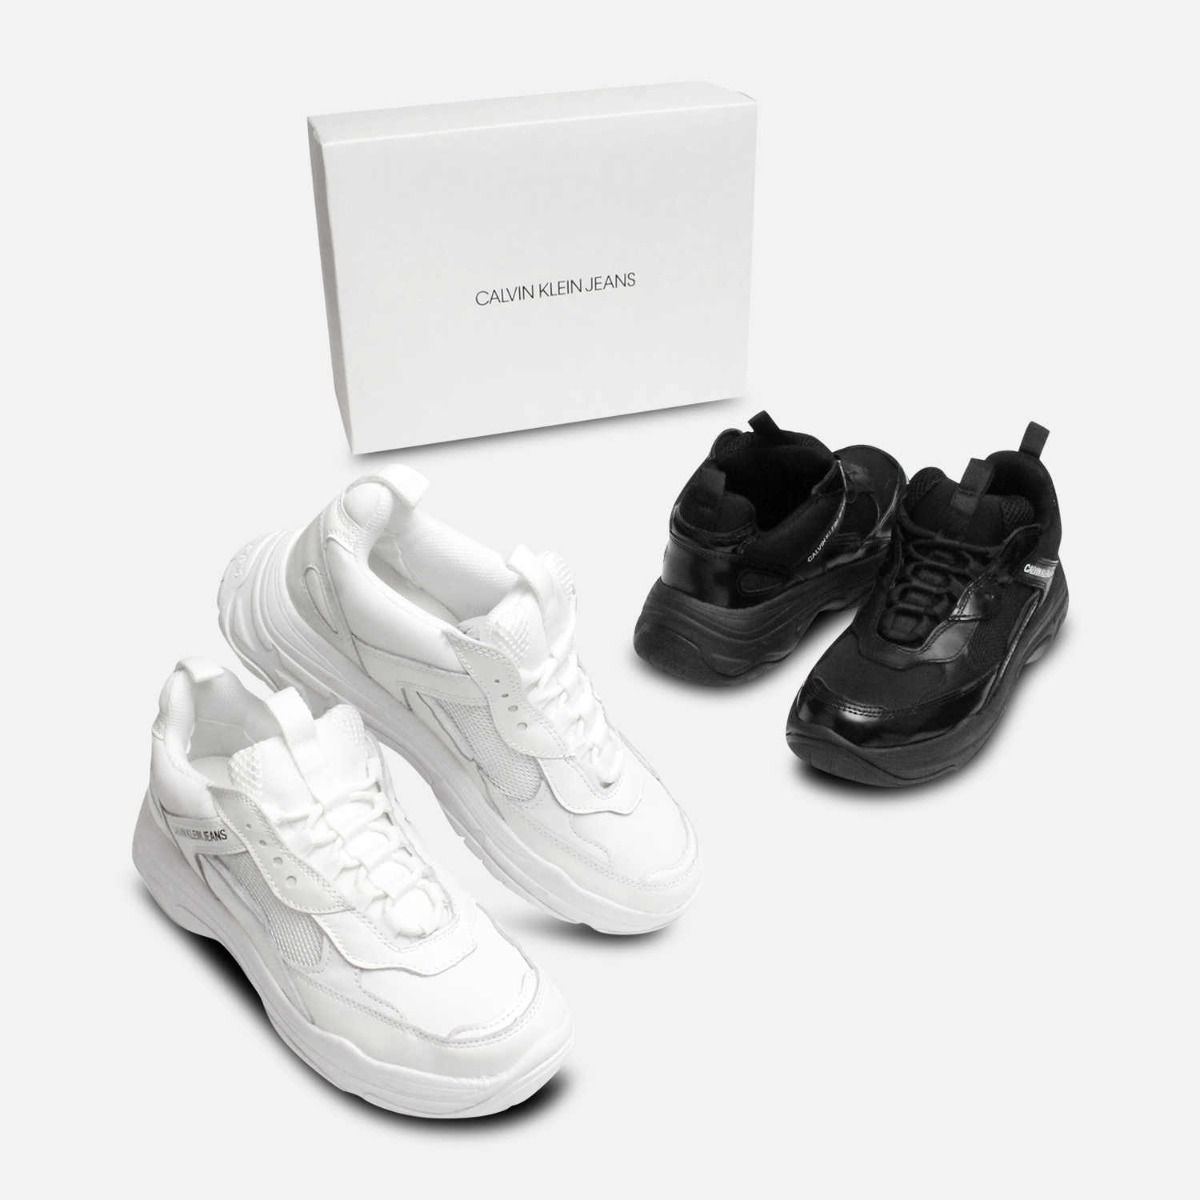 66f72a328 Maya Chunky Trainers in White Leather by Calvin Klein Jeans